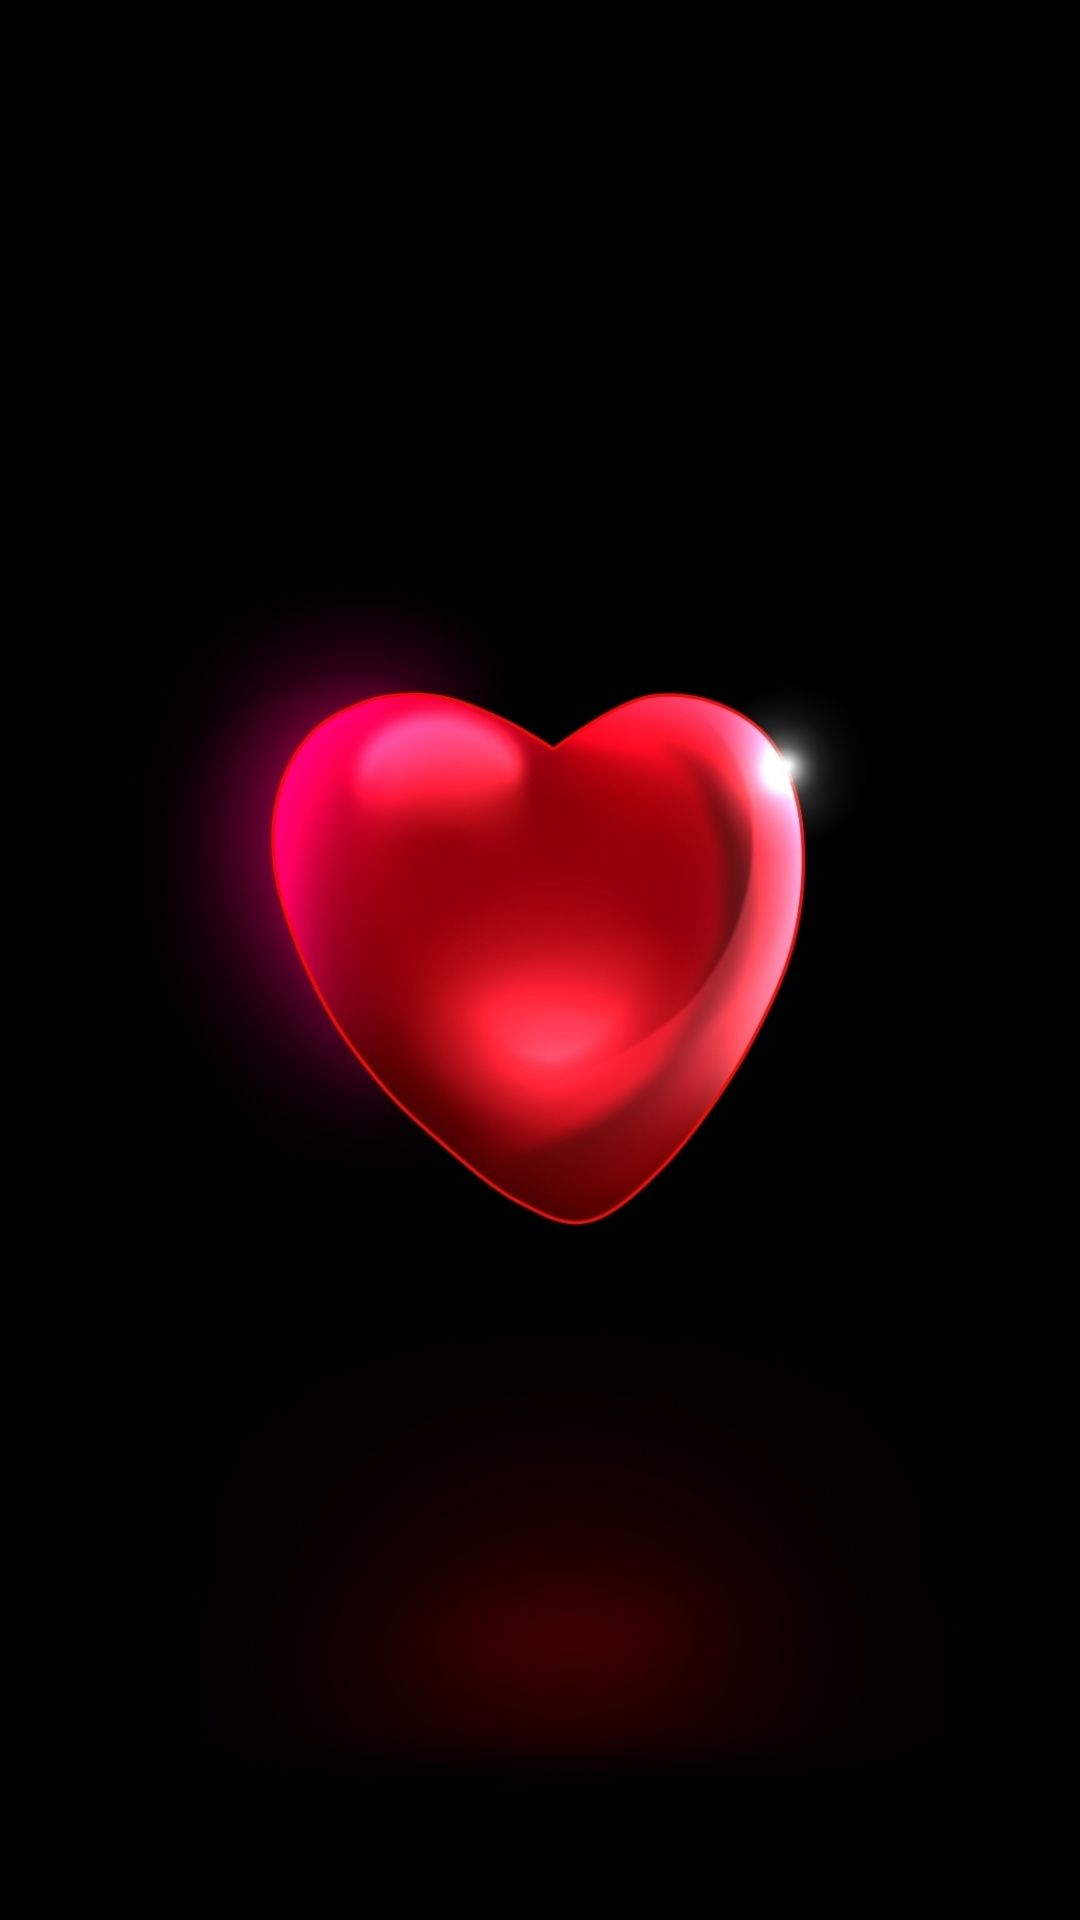 Minimal Red Heart 3d 1080x1920 Wallpaper Iphone Background Red Heart Iphone Wallpaper